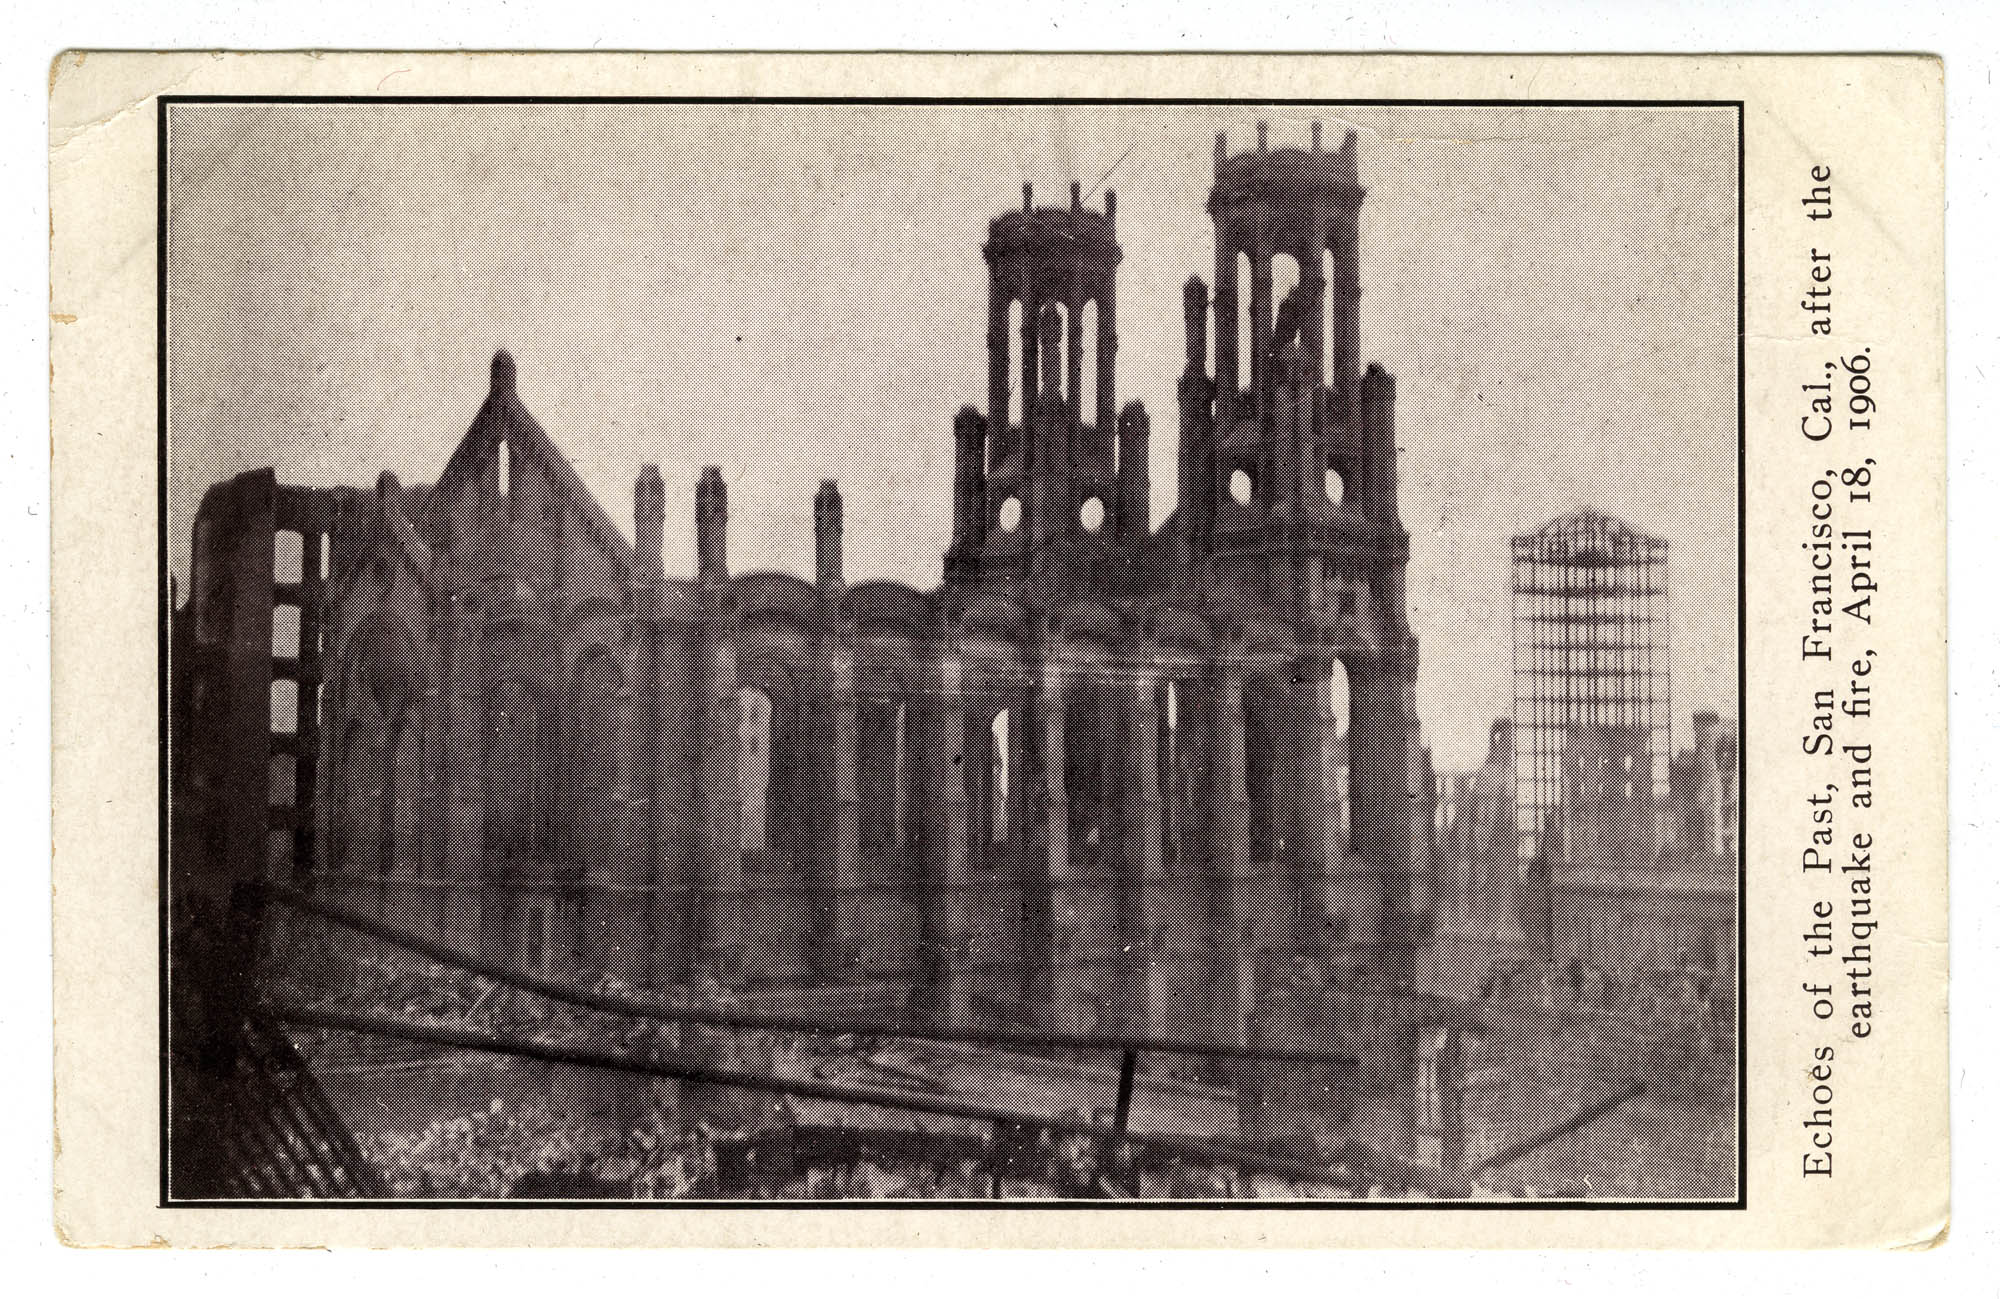 Echoes of the Past, San Francisco, Cal., after the earthquake and fire, April 18, 1906